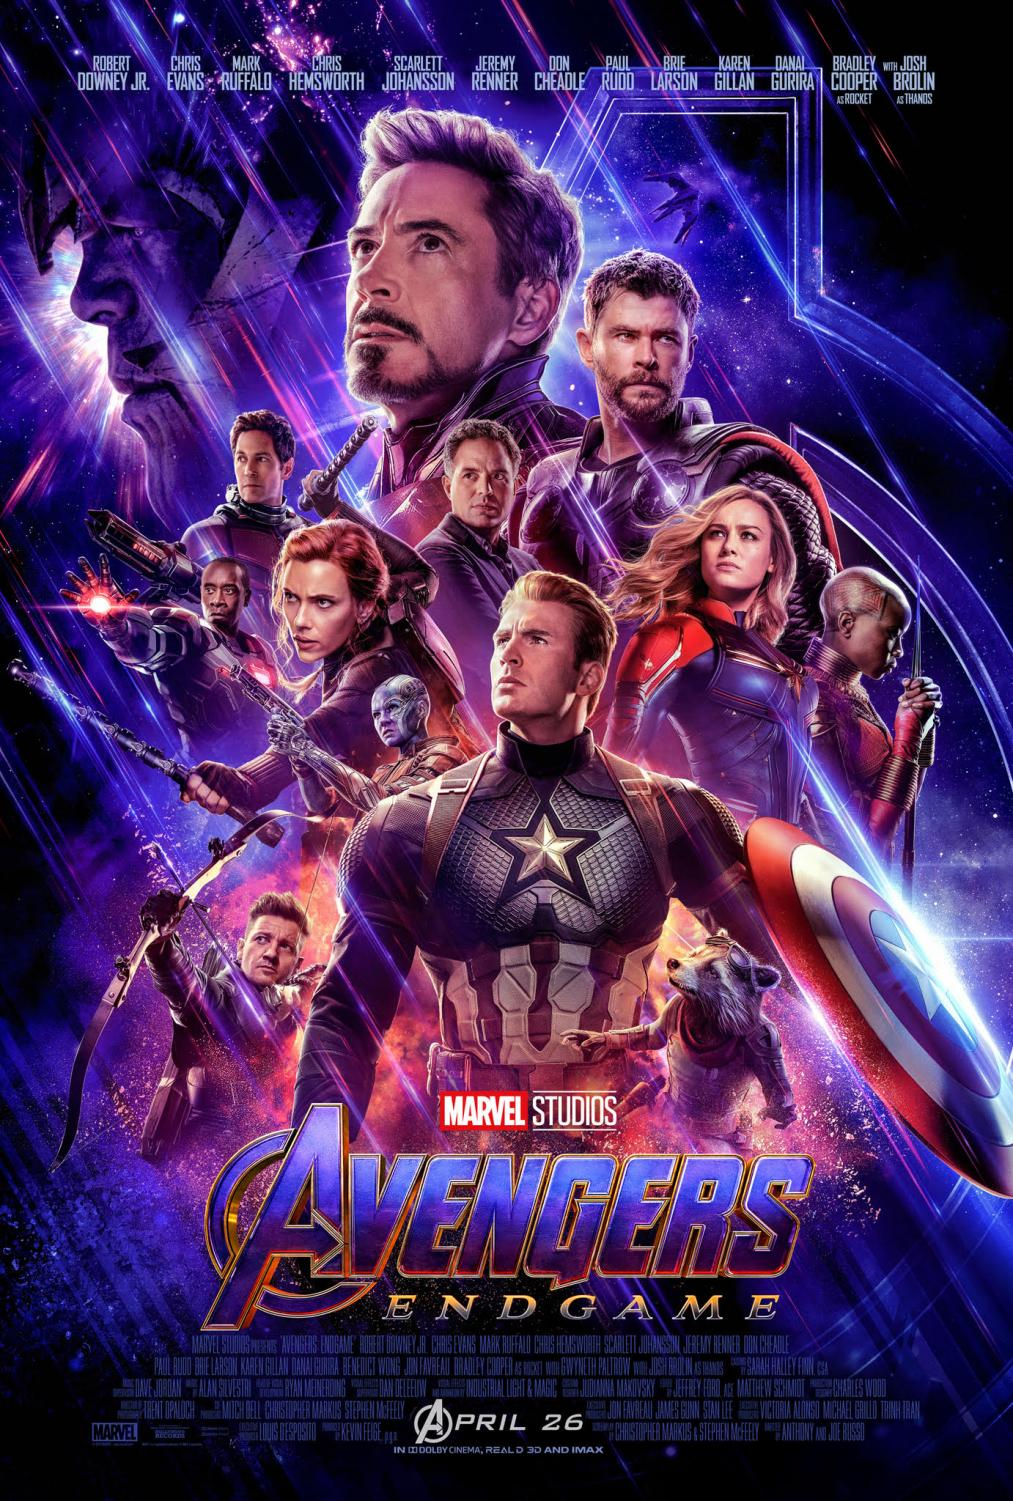 Avengers: Endgame breaks box office records on its opening weekend.